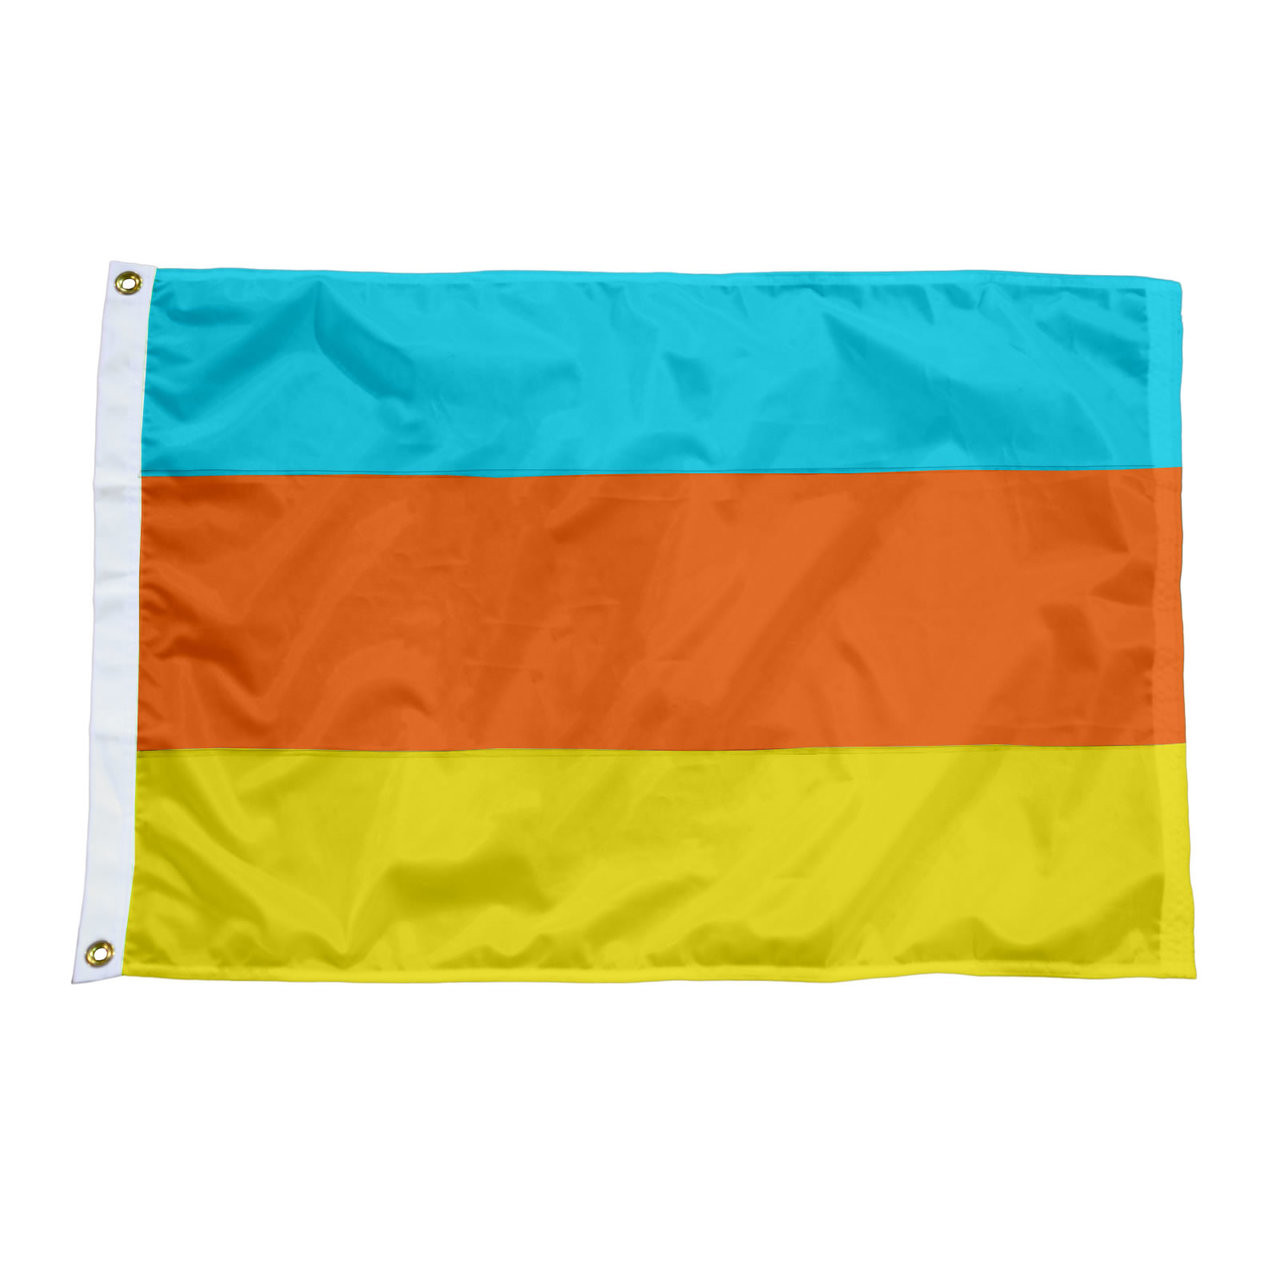 3 Panel Solid Color Nylon Attention Flags